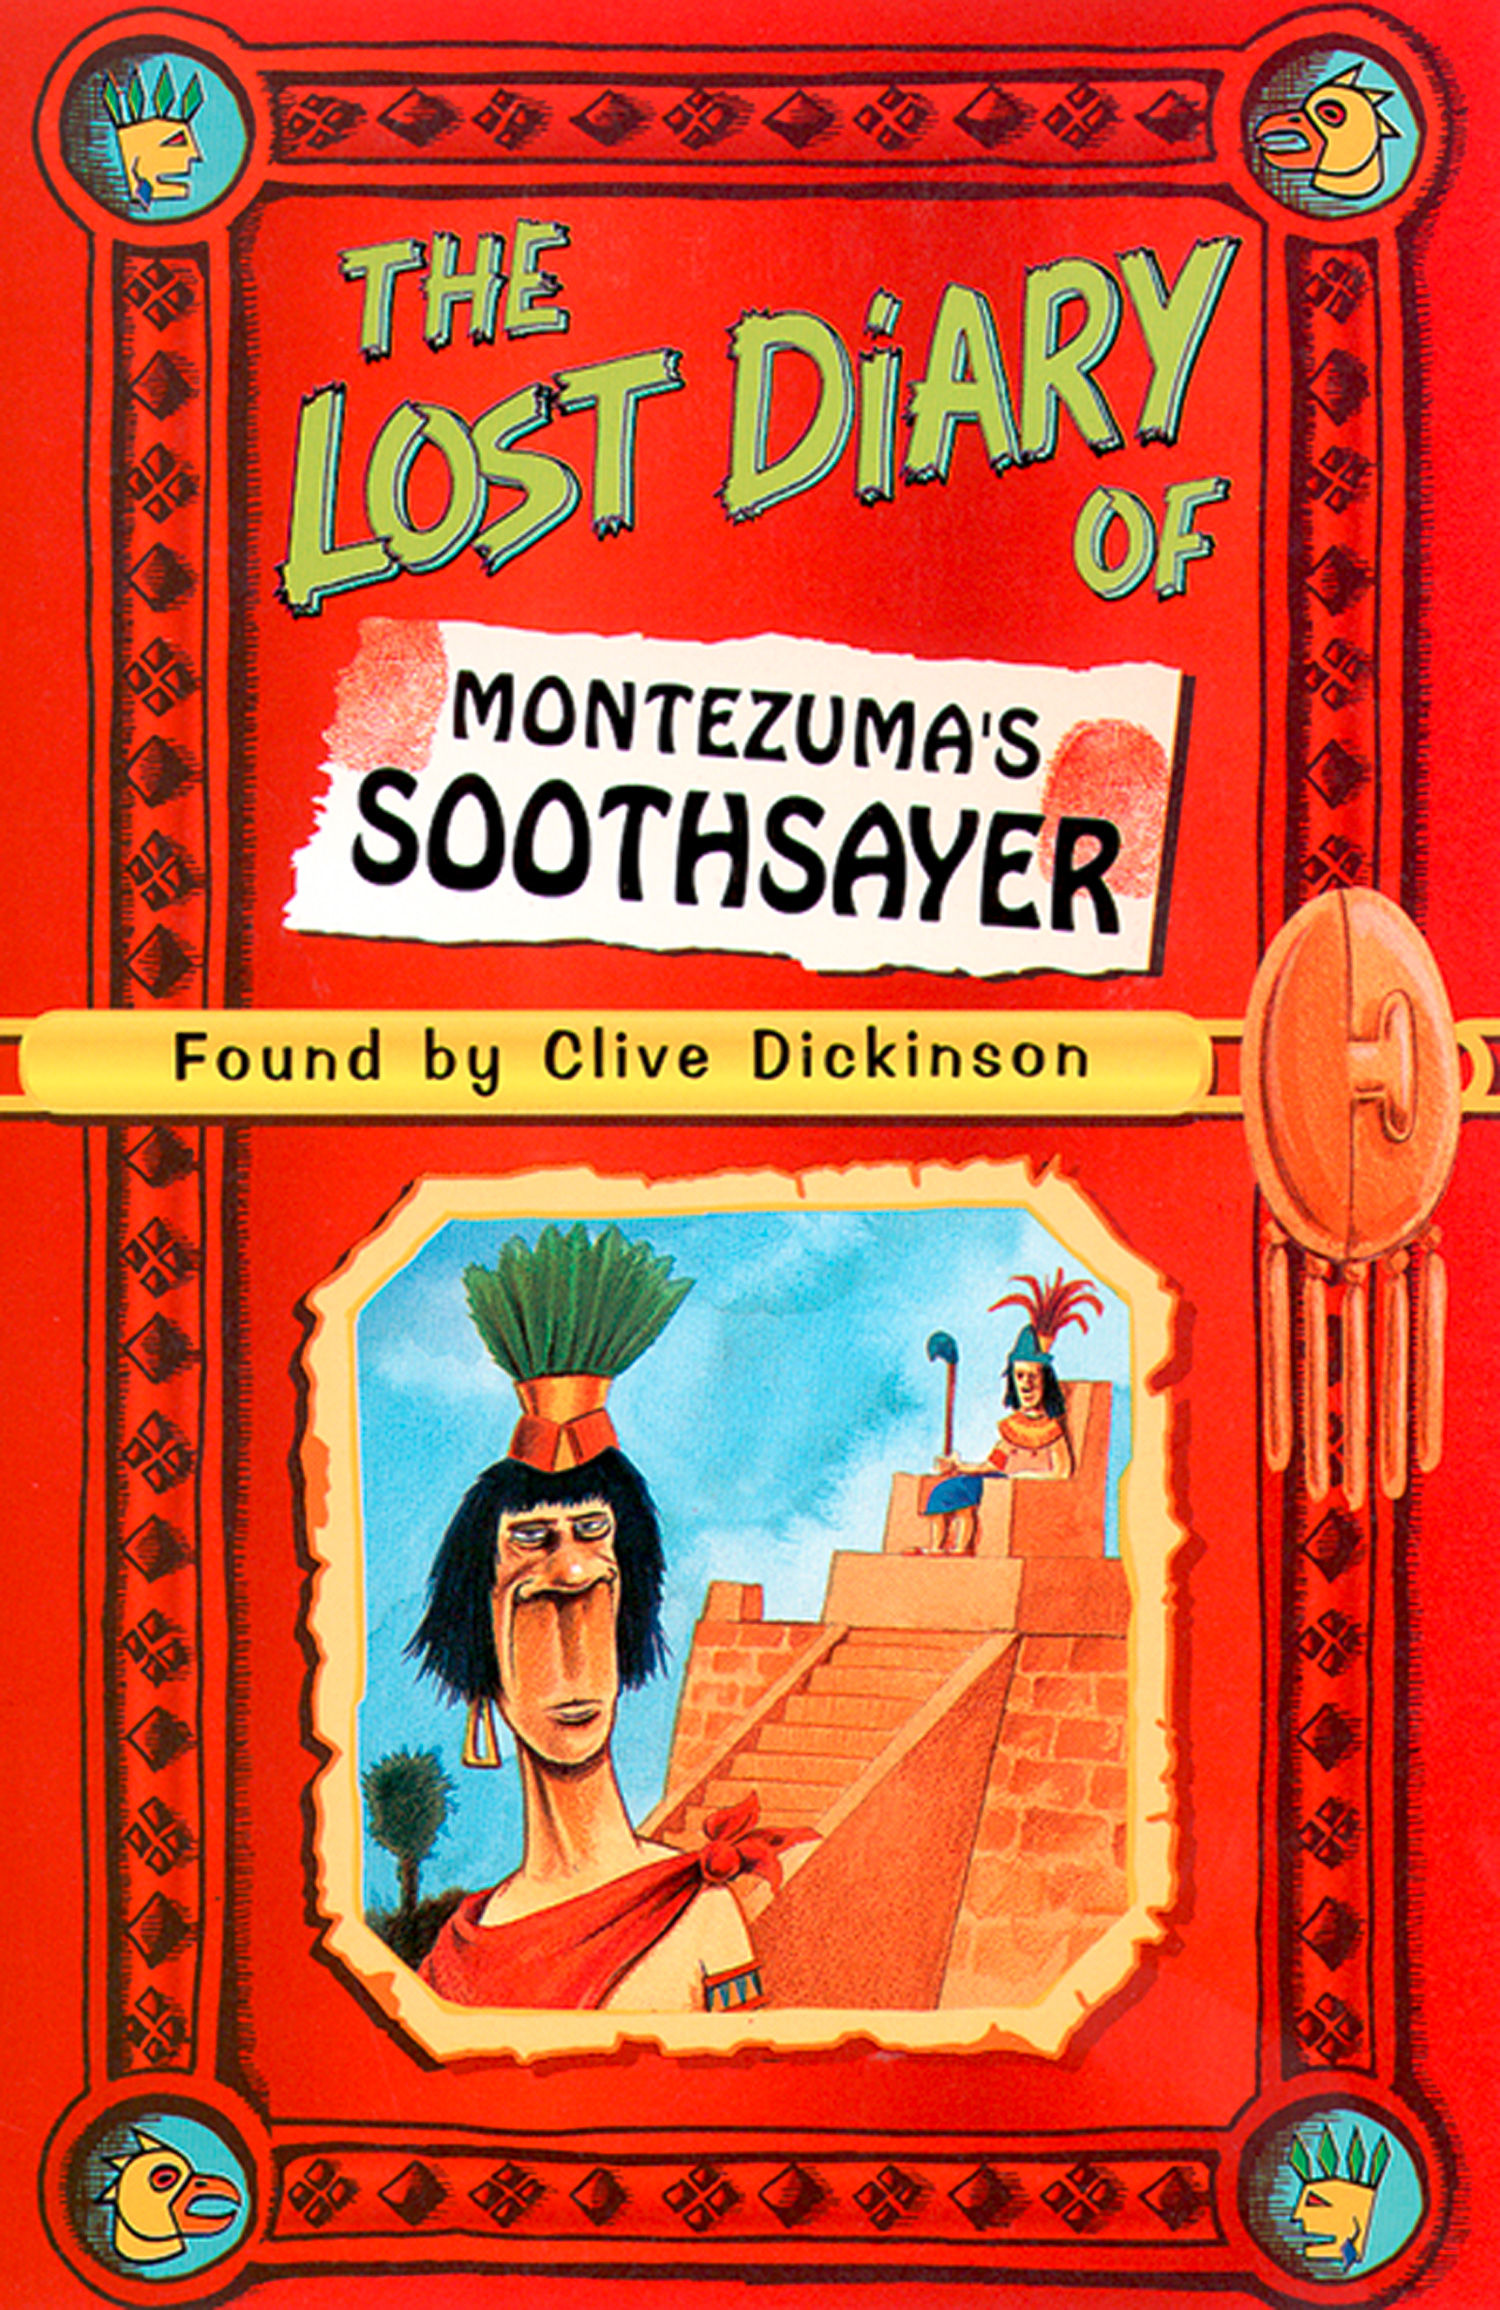 The Lost Diary of Montezuma?s Soothsayer